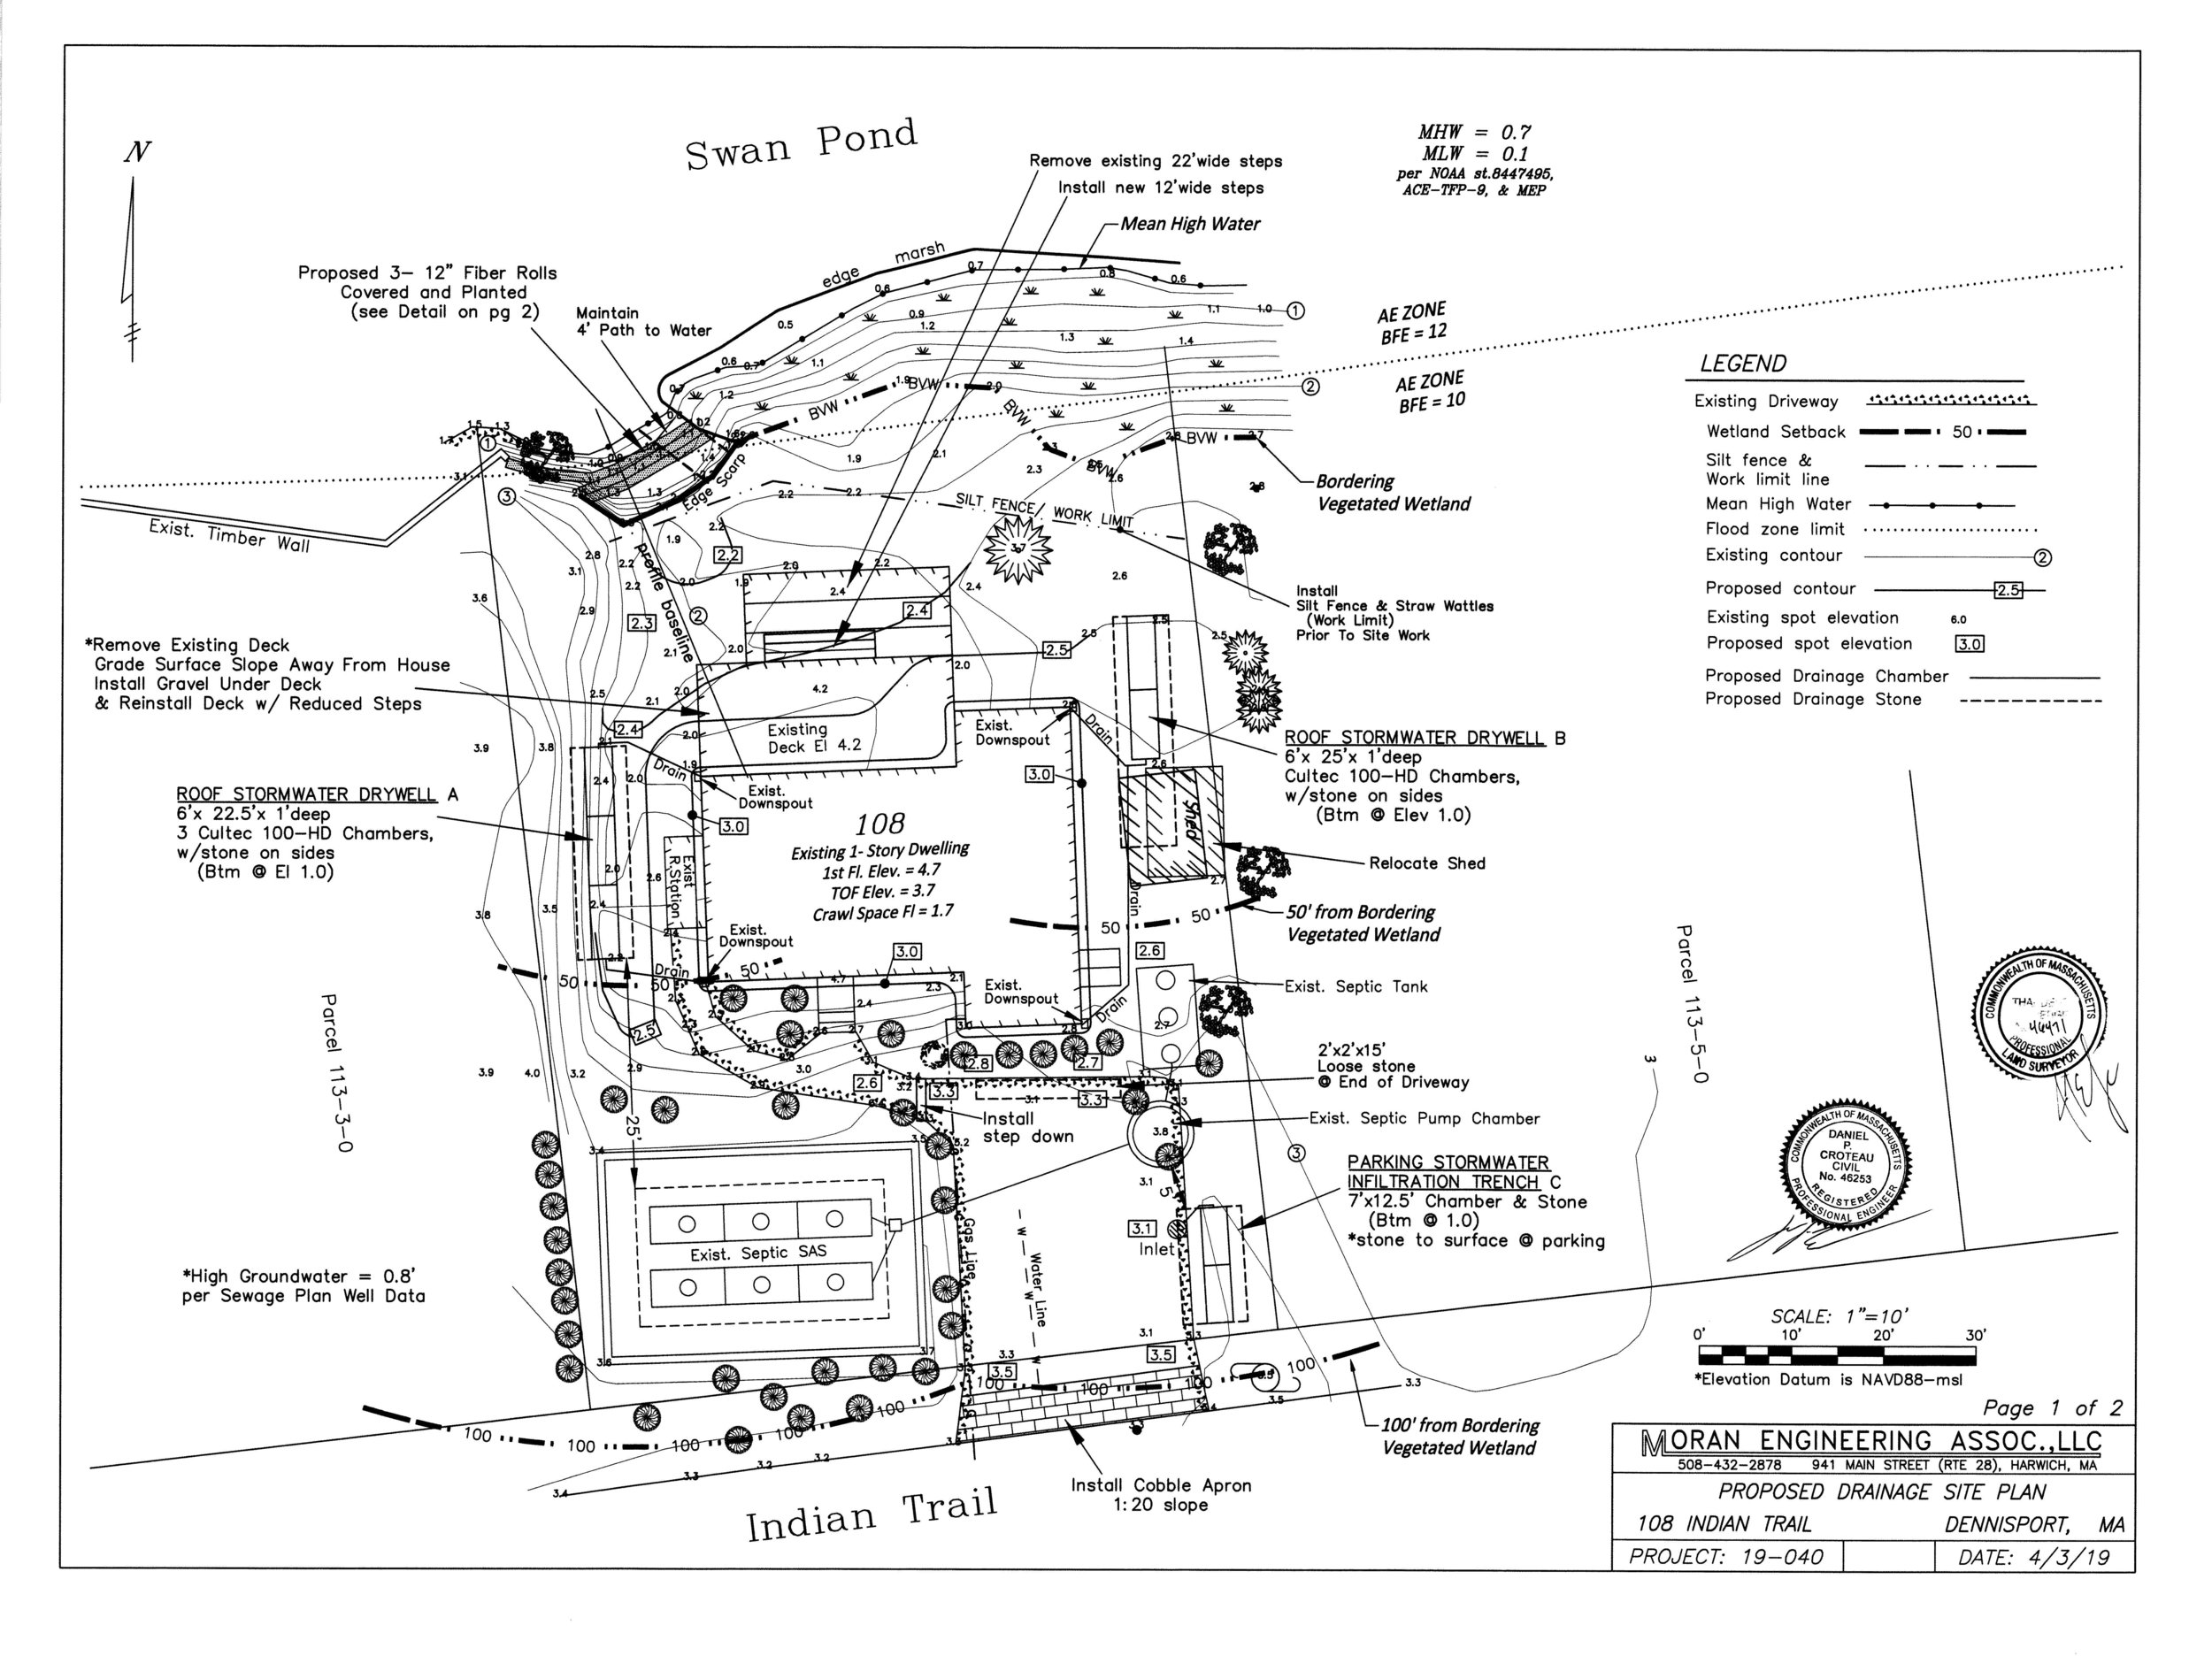 2019-04-03 1 of 2 Proposed Drainage Site Plan.jpg